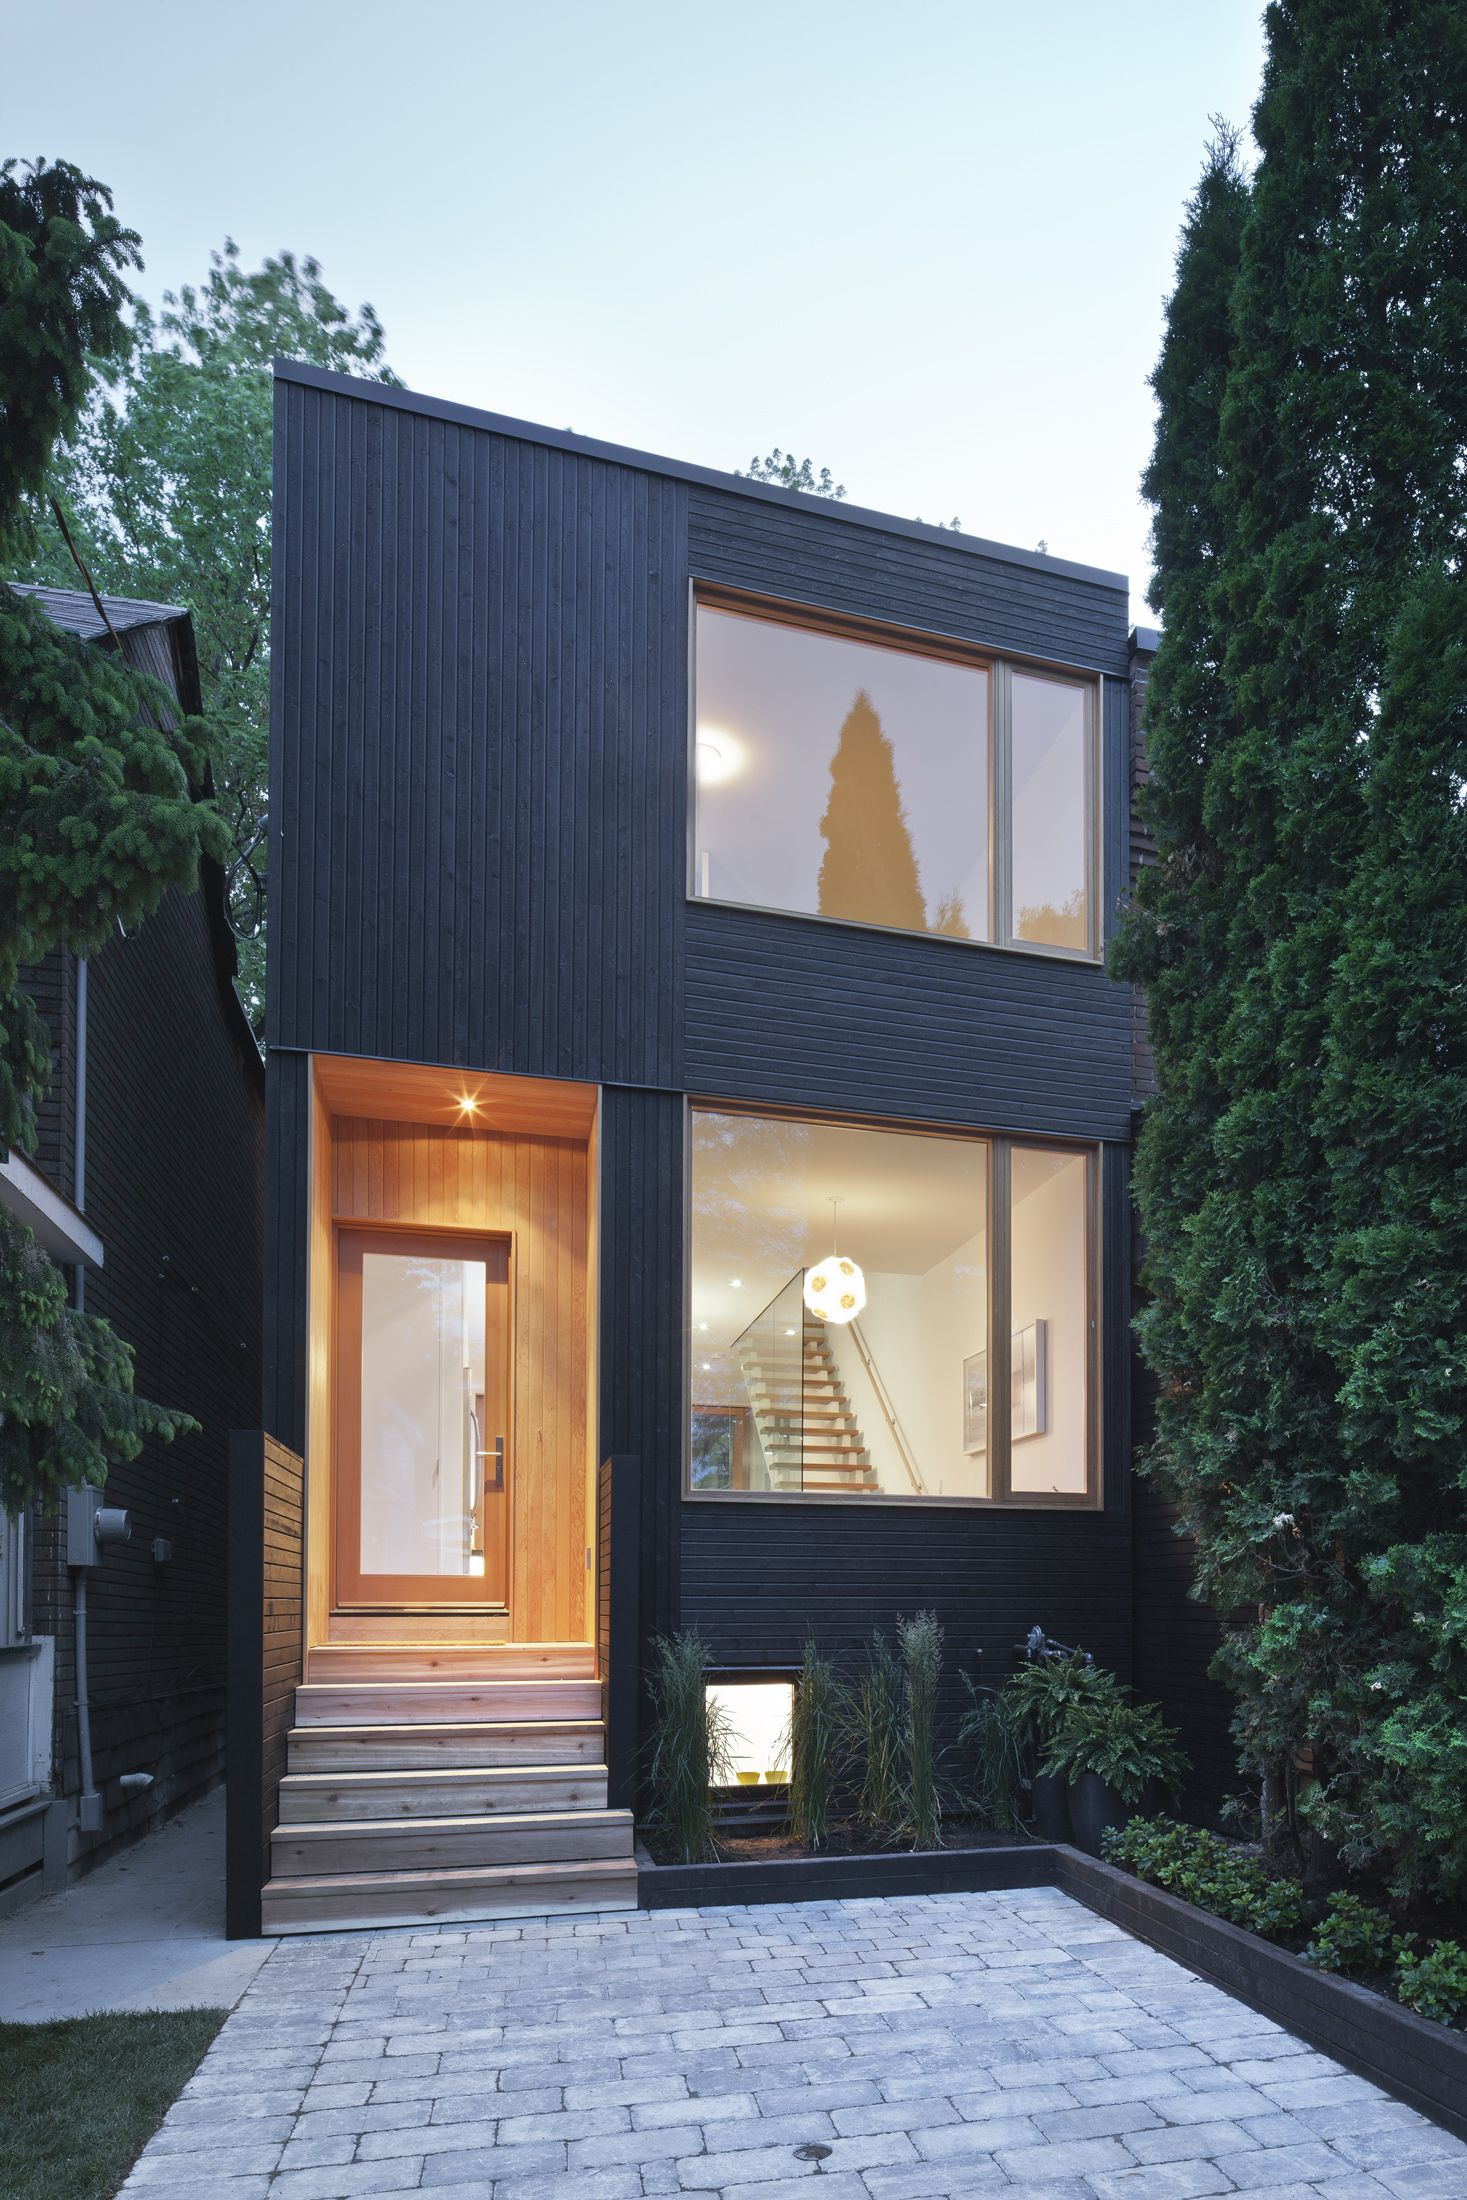 An affordable modern toronto house modernest one kyra for New architecture design house